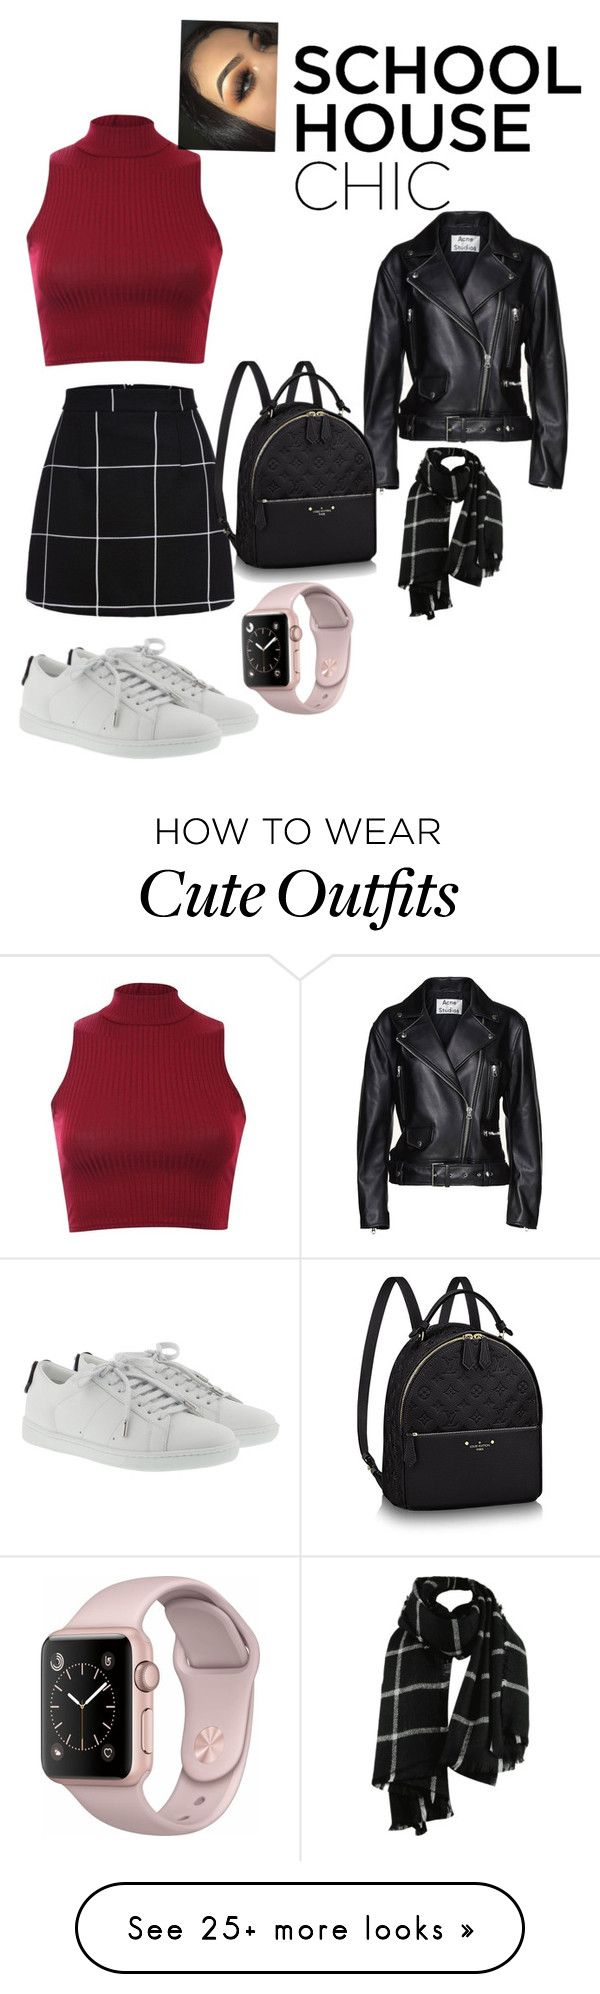 """""""Typical school cute outfit"""" by hallerowee on Polyvore featuring Pilot, Acne Studios and Yves Saint Laurent"""